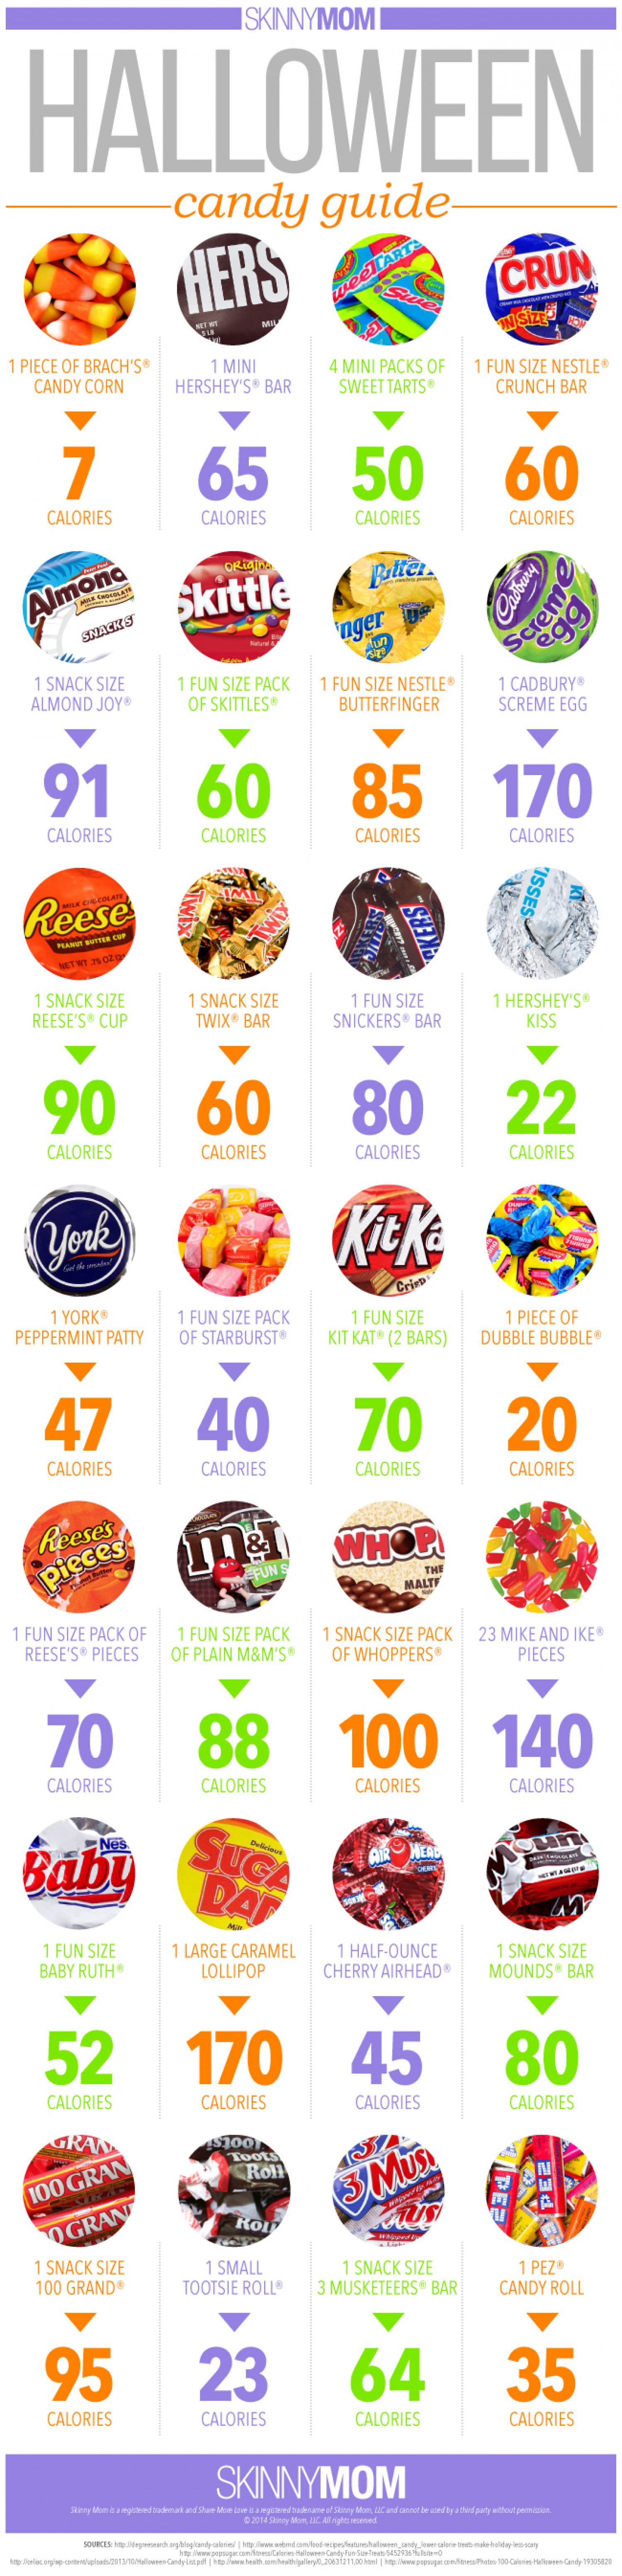 The Official Skinny Mom Guide to Halloween Candy Infographic